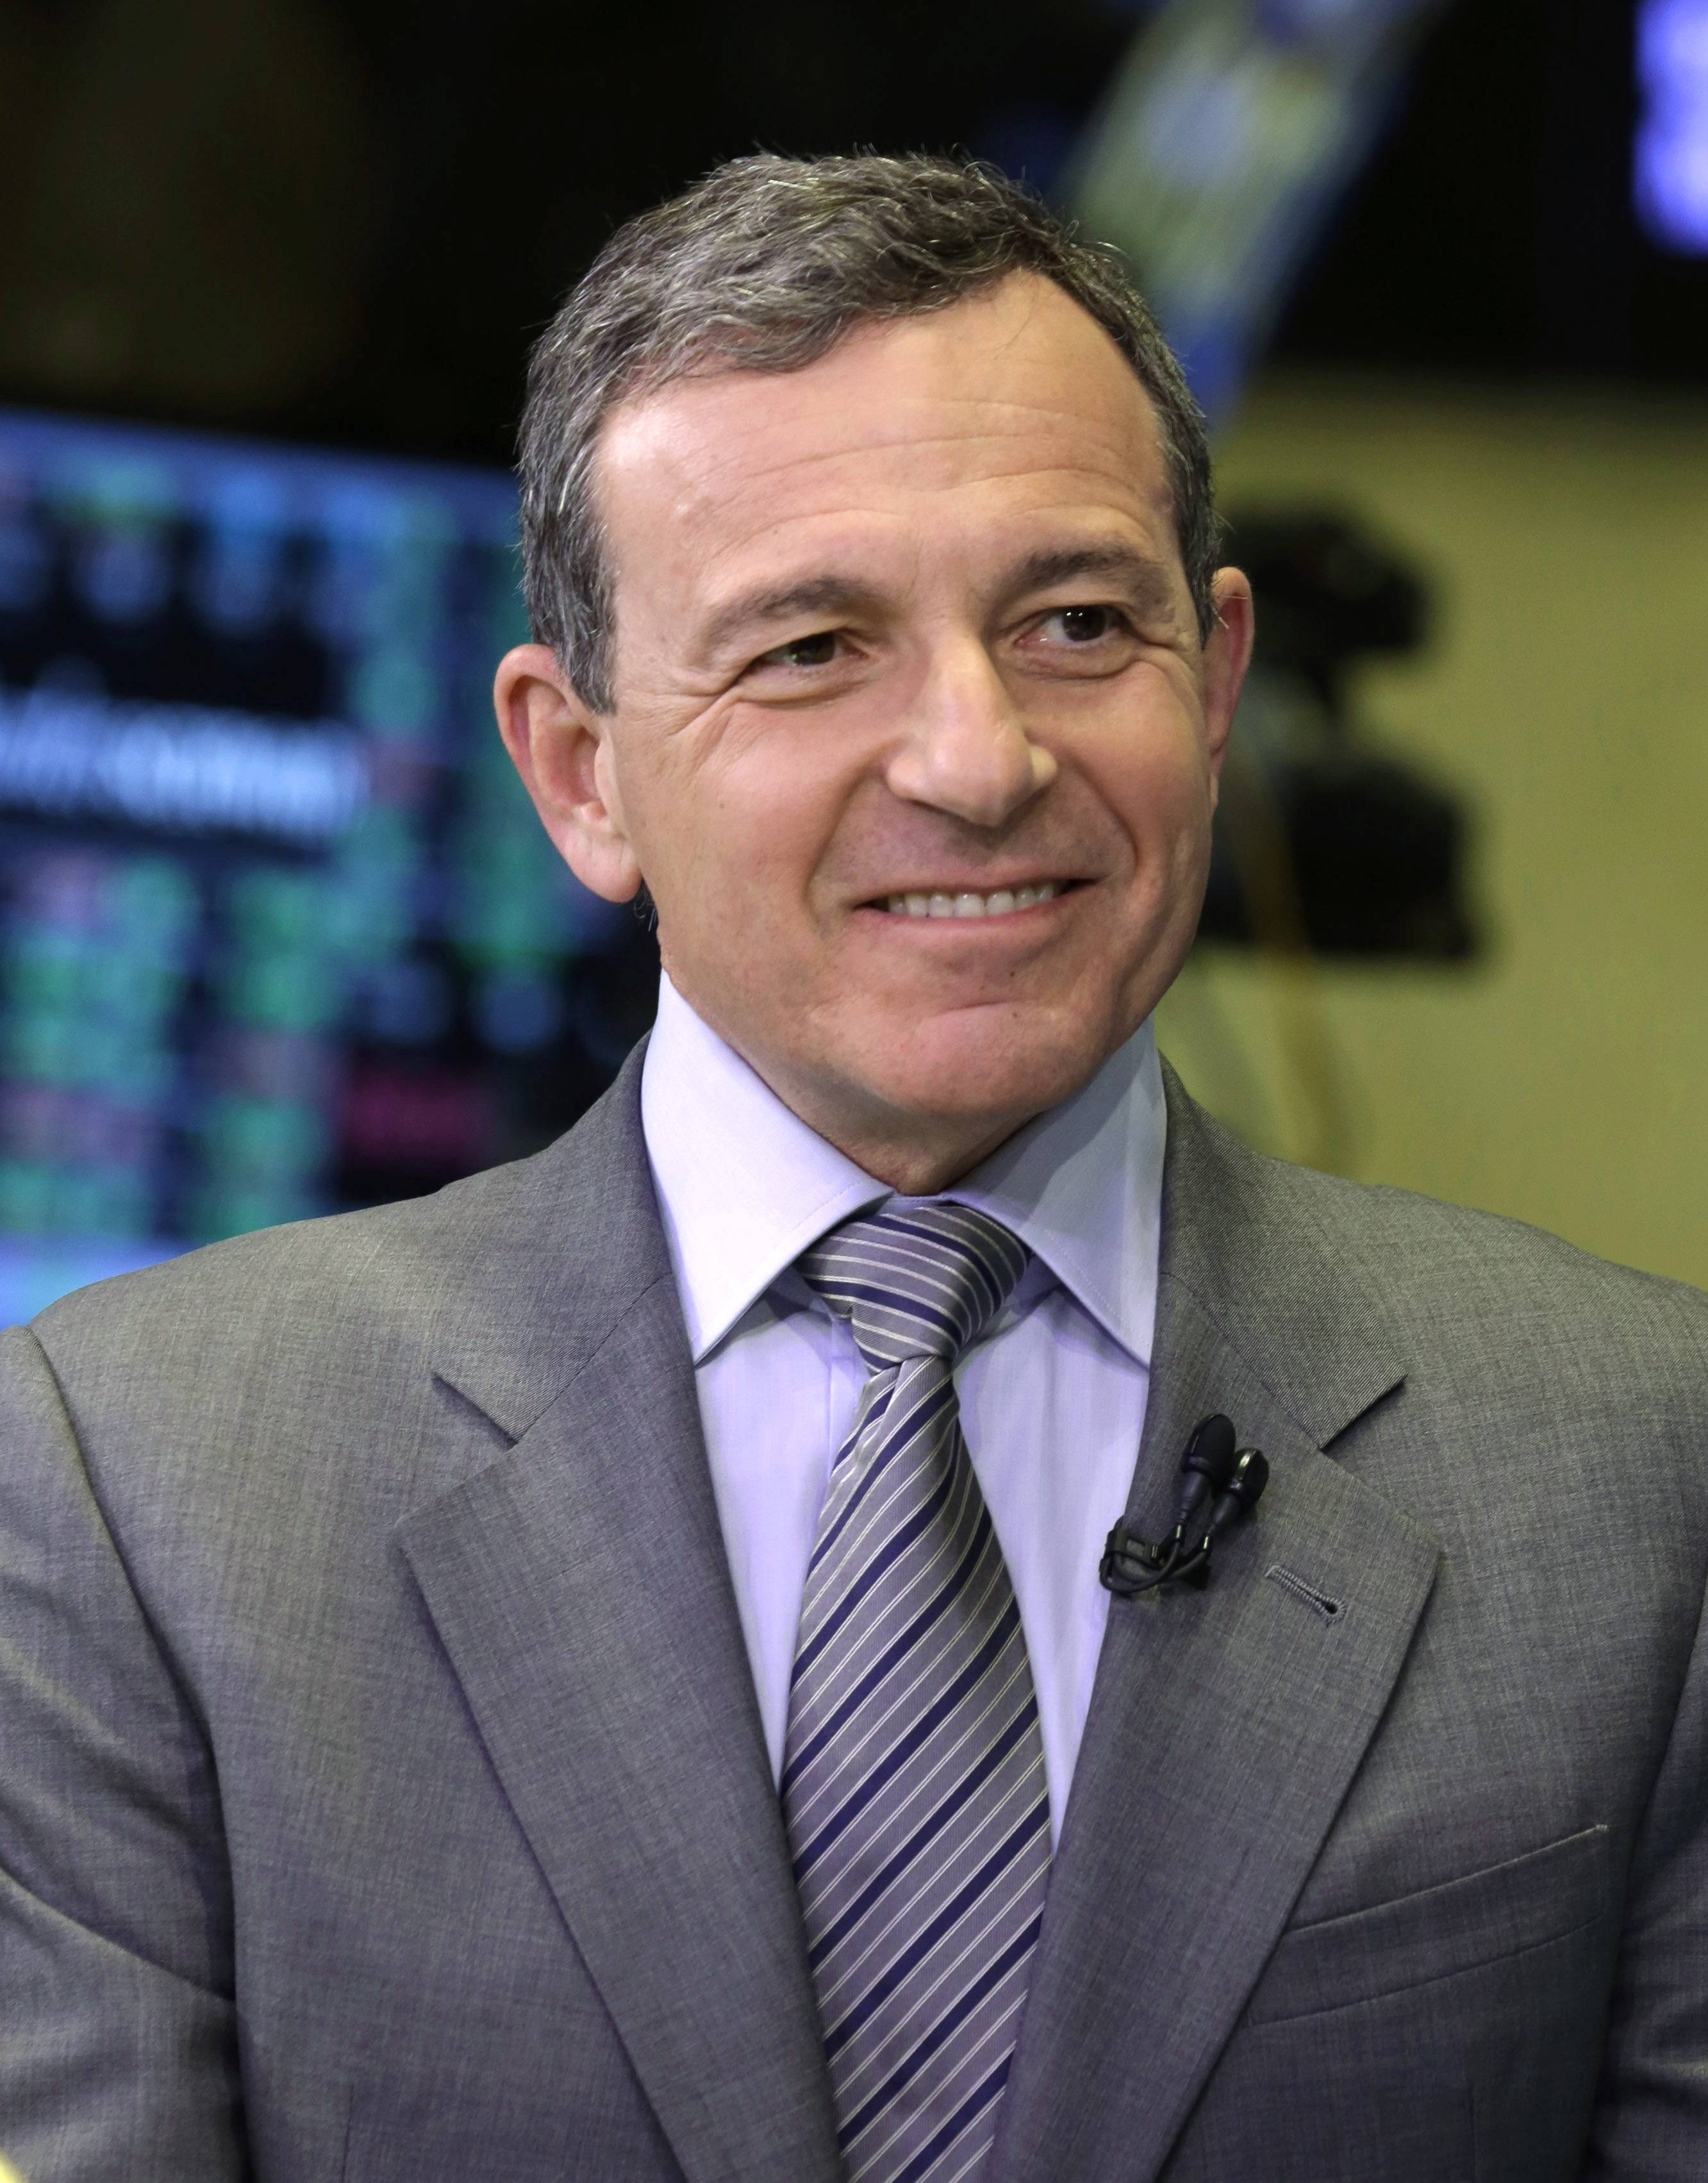 7.Bob Iger, chairman and CEO of The Walt Disney Company.